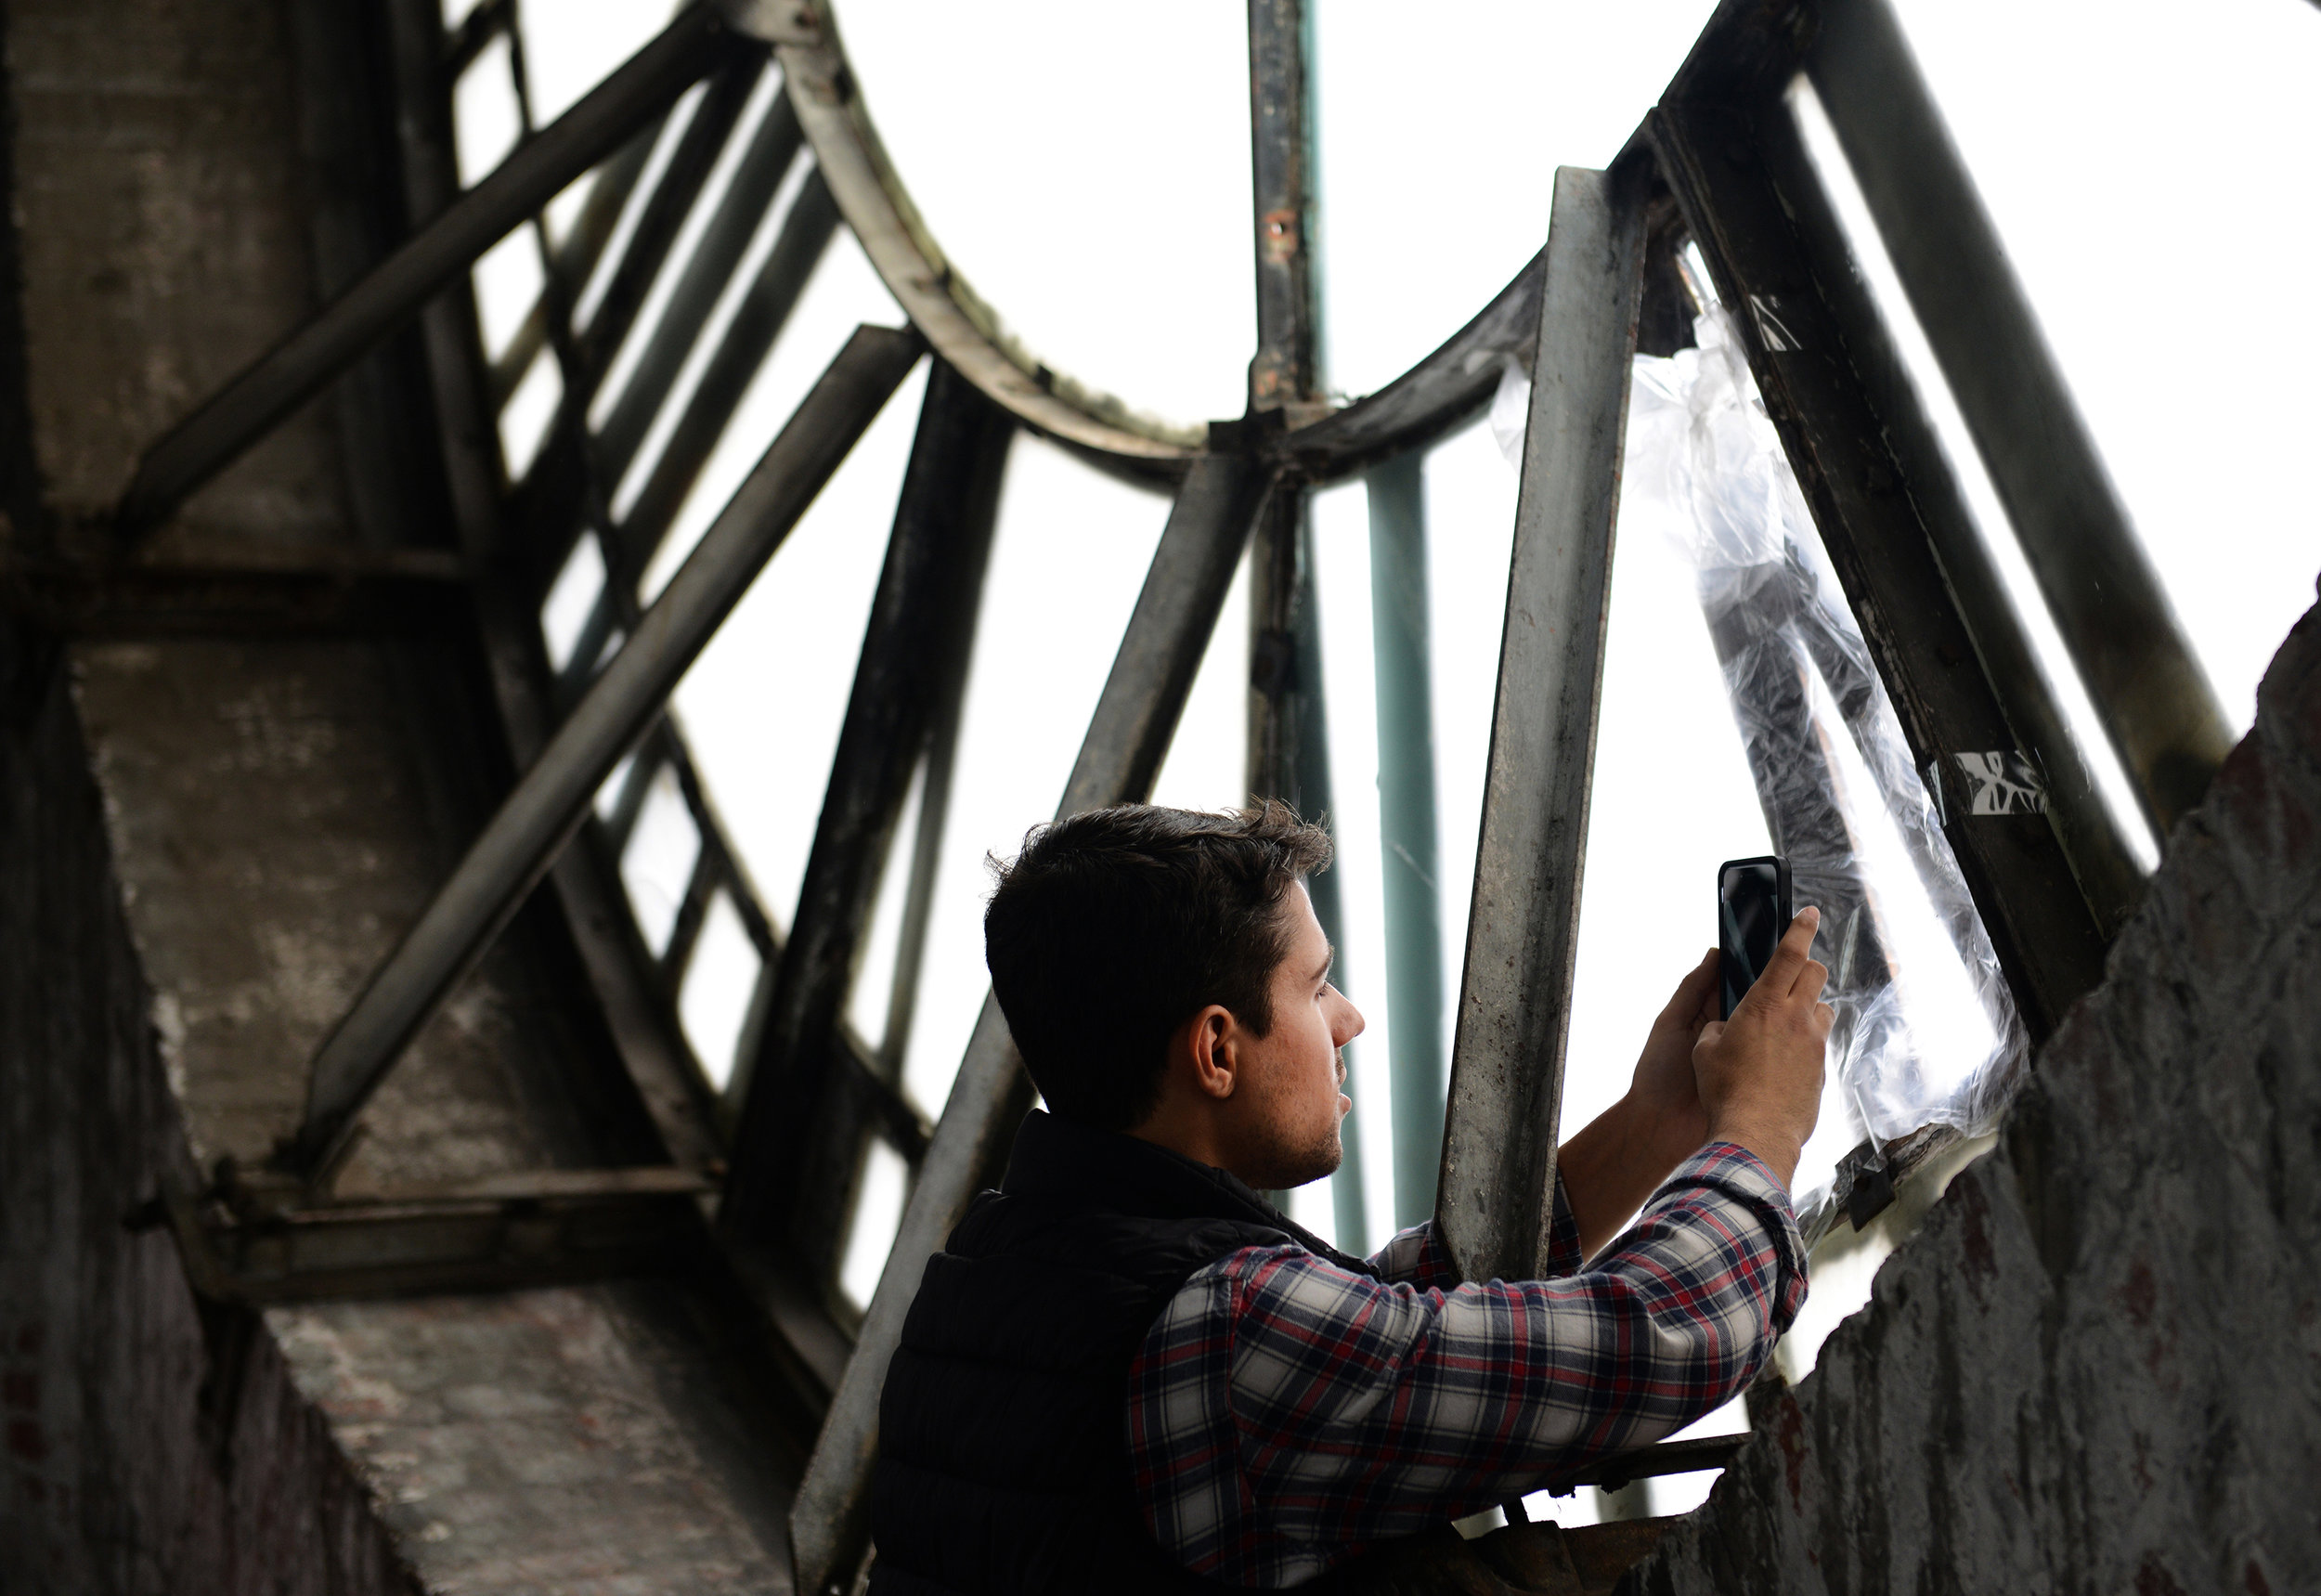 Johns Hopkins University student Bryan Ricciardi snaps a picture through a crack in the southern face of the clock while touring the Bromo Seltzer Arts Tower on Saturday, February 20, 2016 in Baltimore, Md. Photo by David Andrews.